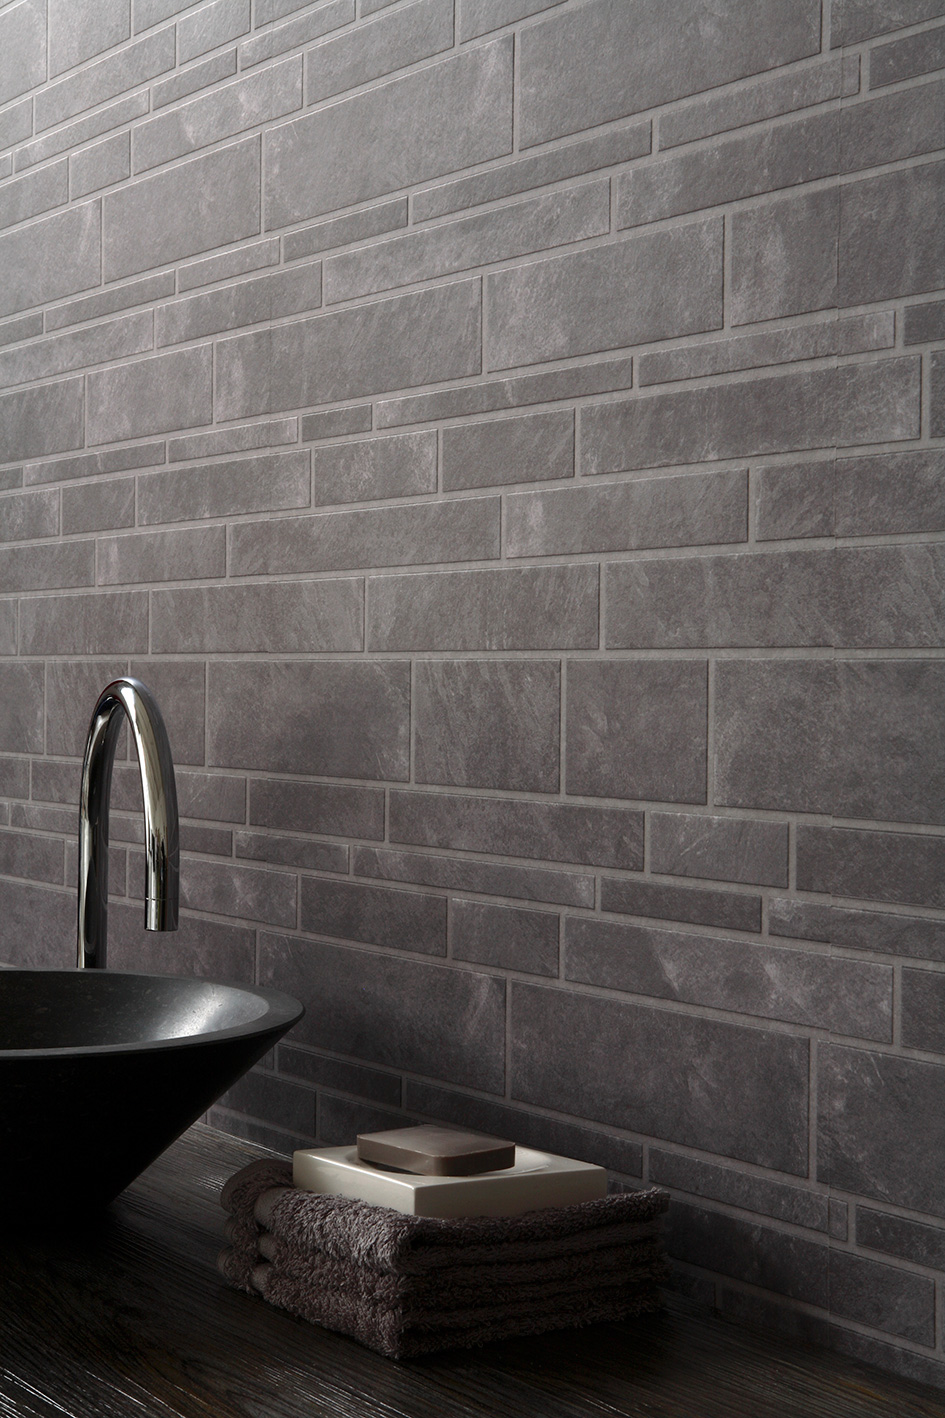 Bathroom wallpaper - Create your own sanctuary